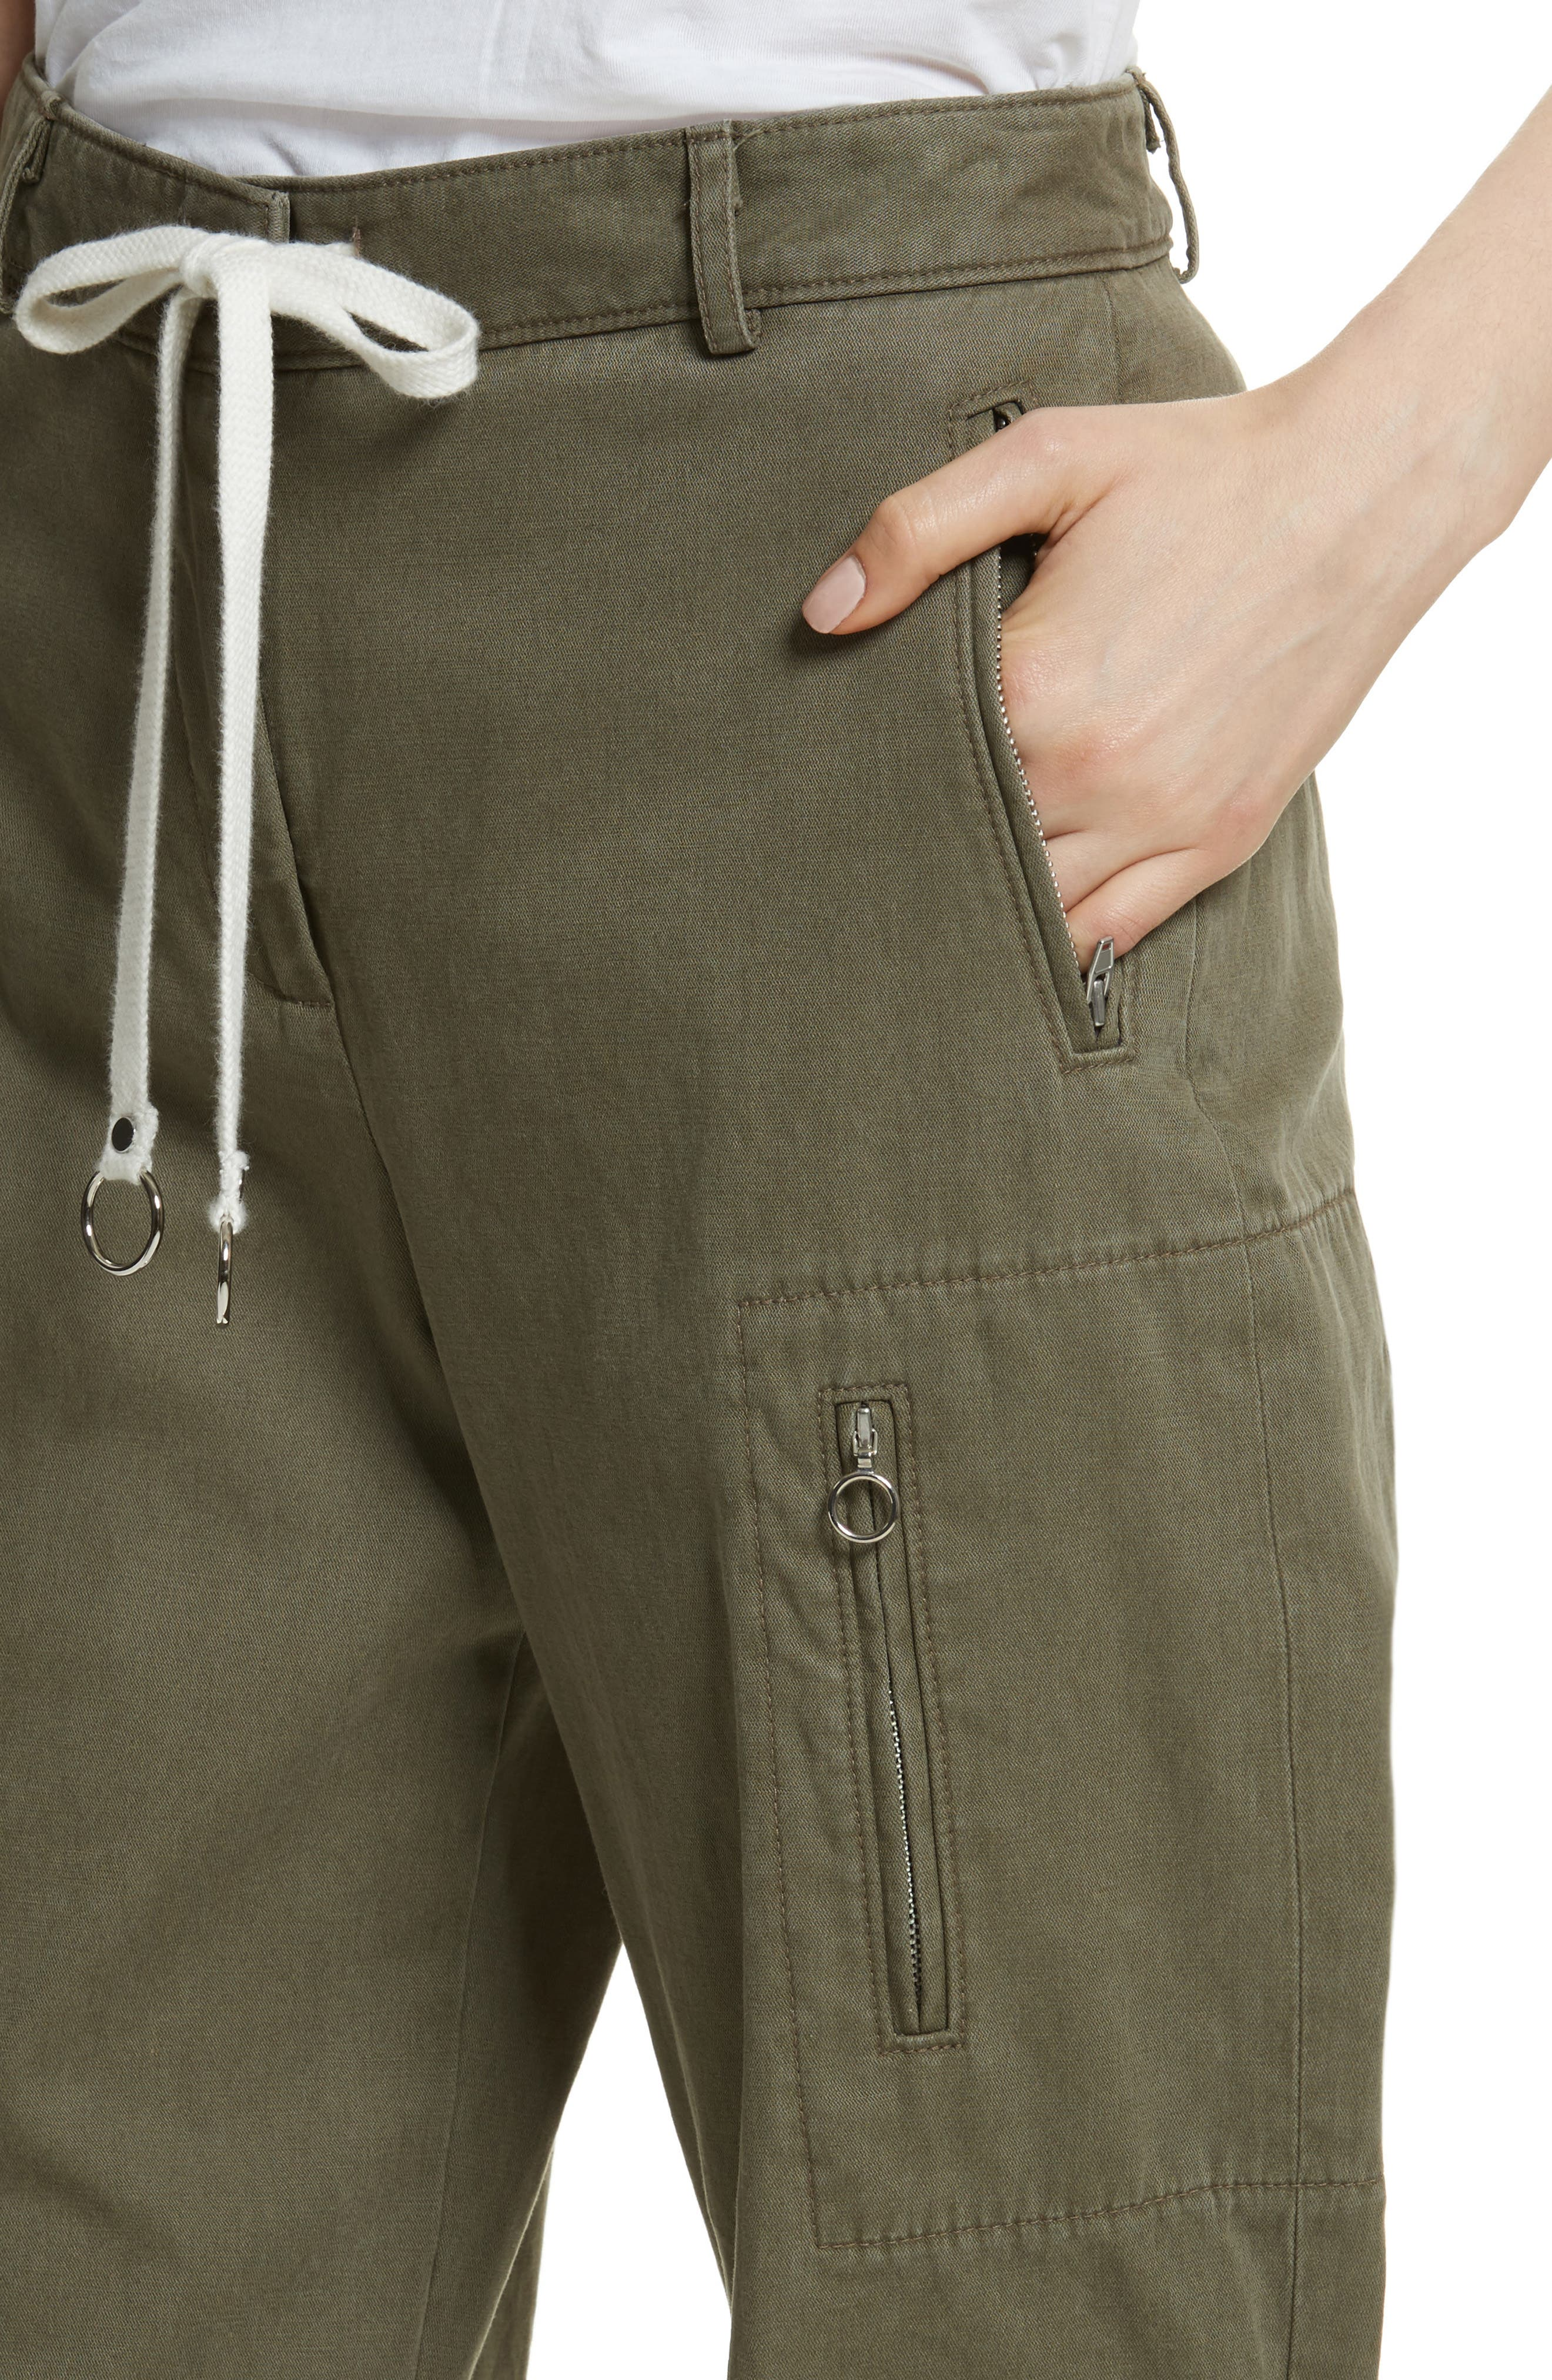 T by Alexander Wang Twill Cargo Pants,                             Alternate thumbnail 4, color,                             309